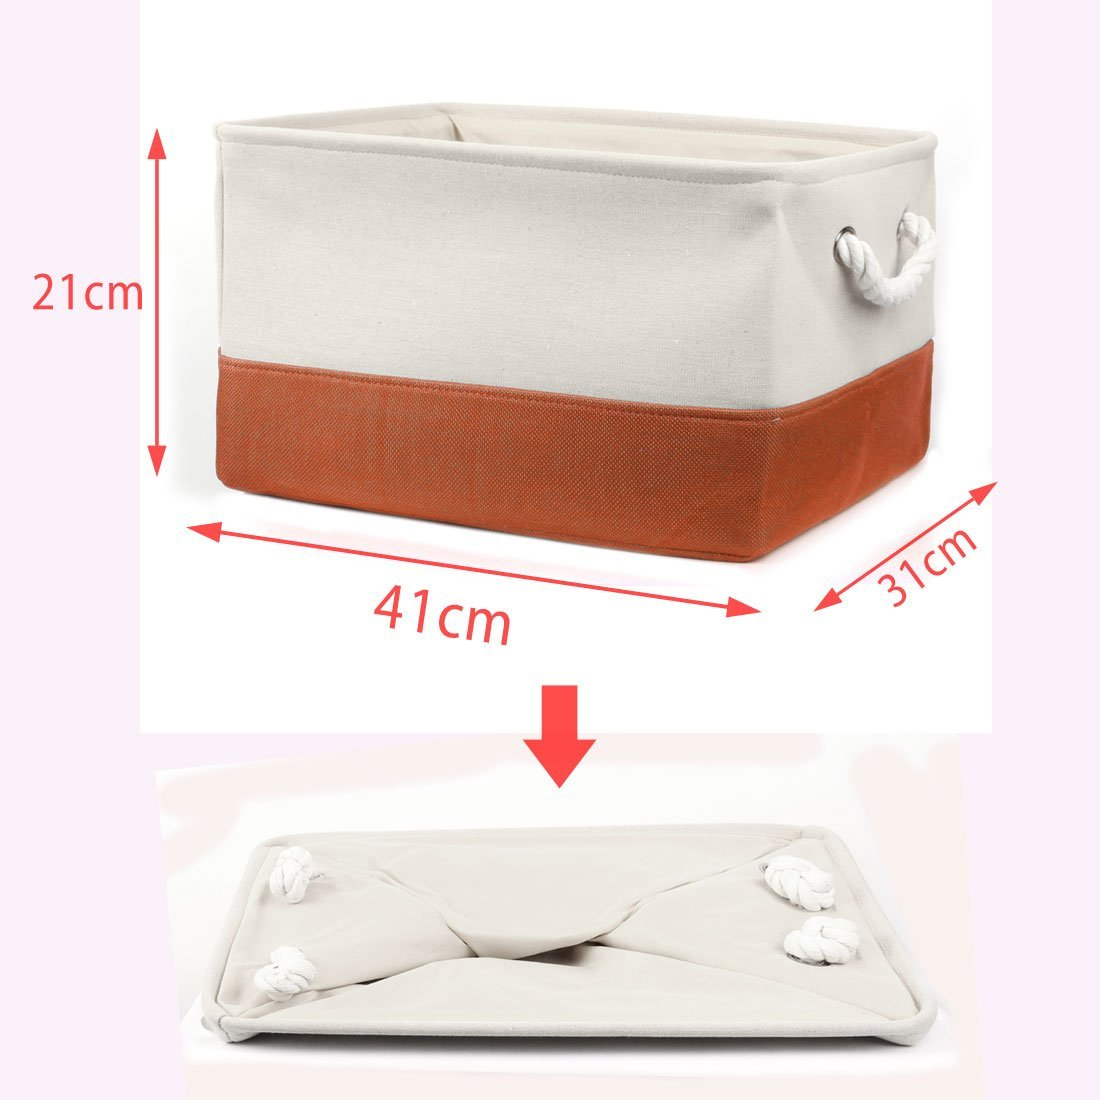 DealMux Foldable Fabric Dual Handles Storage Bin Basket Toy Clothes Towel Laundry Box Container Organizer (Orange, L),Mother's Day Gift for Mom